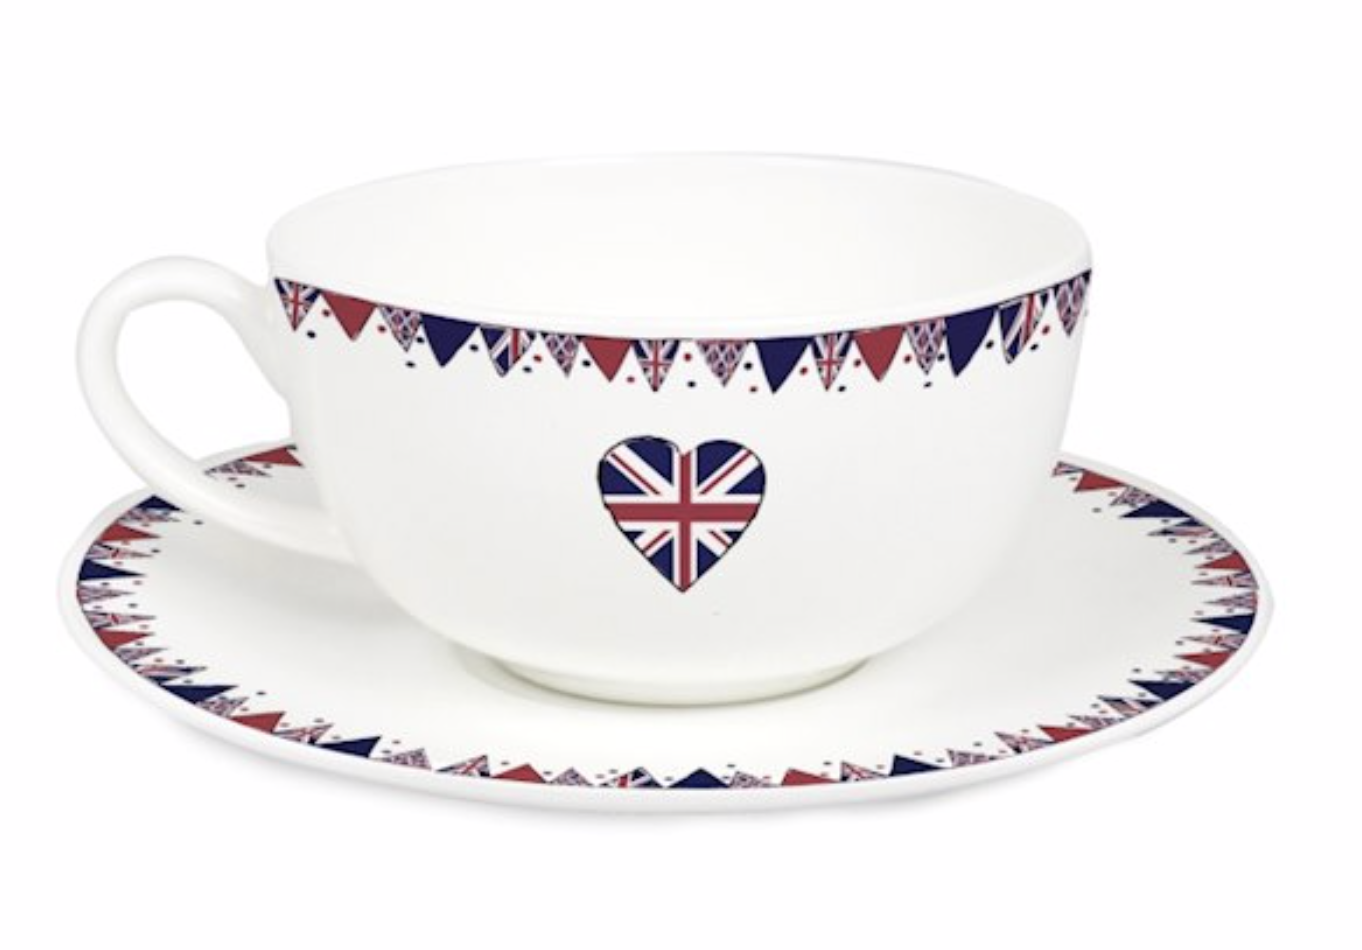 Picture source:  https://www.specialmoment.co.uk/union-jack-bunting-teacup-and-saucer.aspx  - where this cup and saucer set is available for £10.99